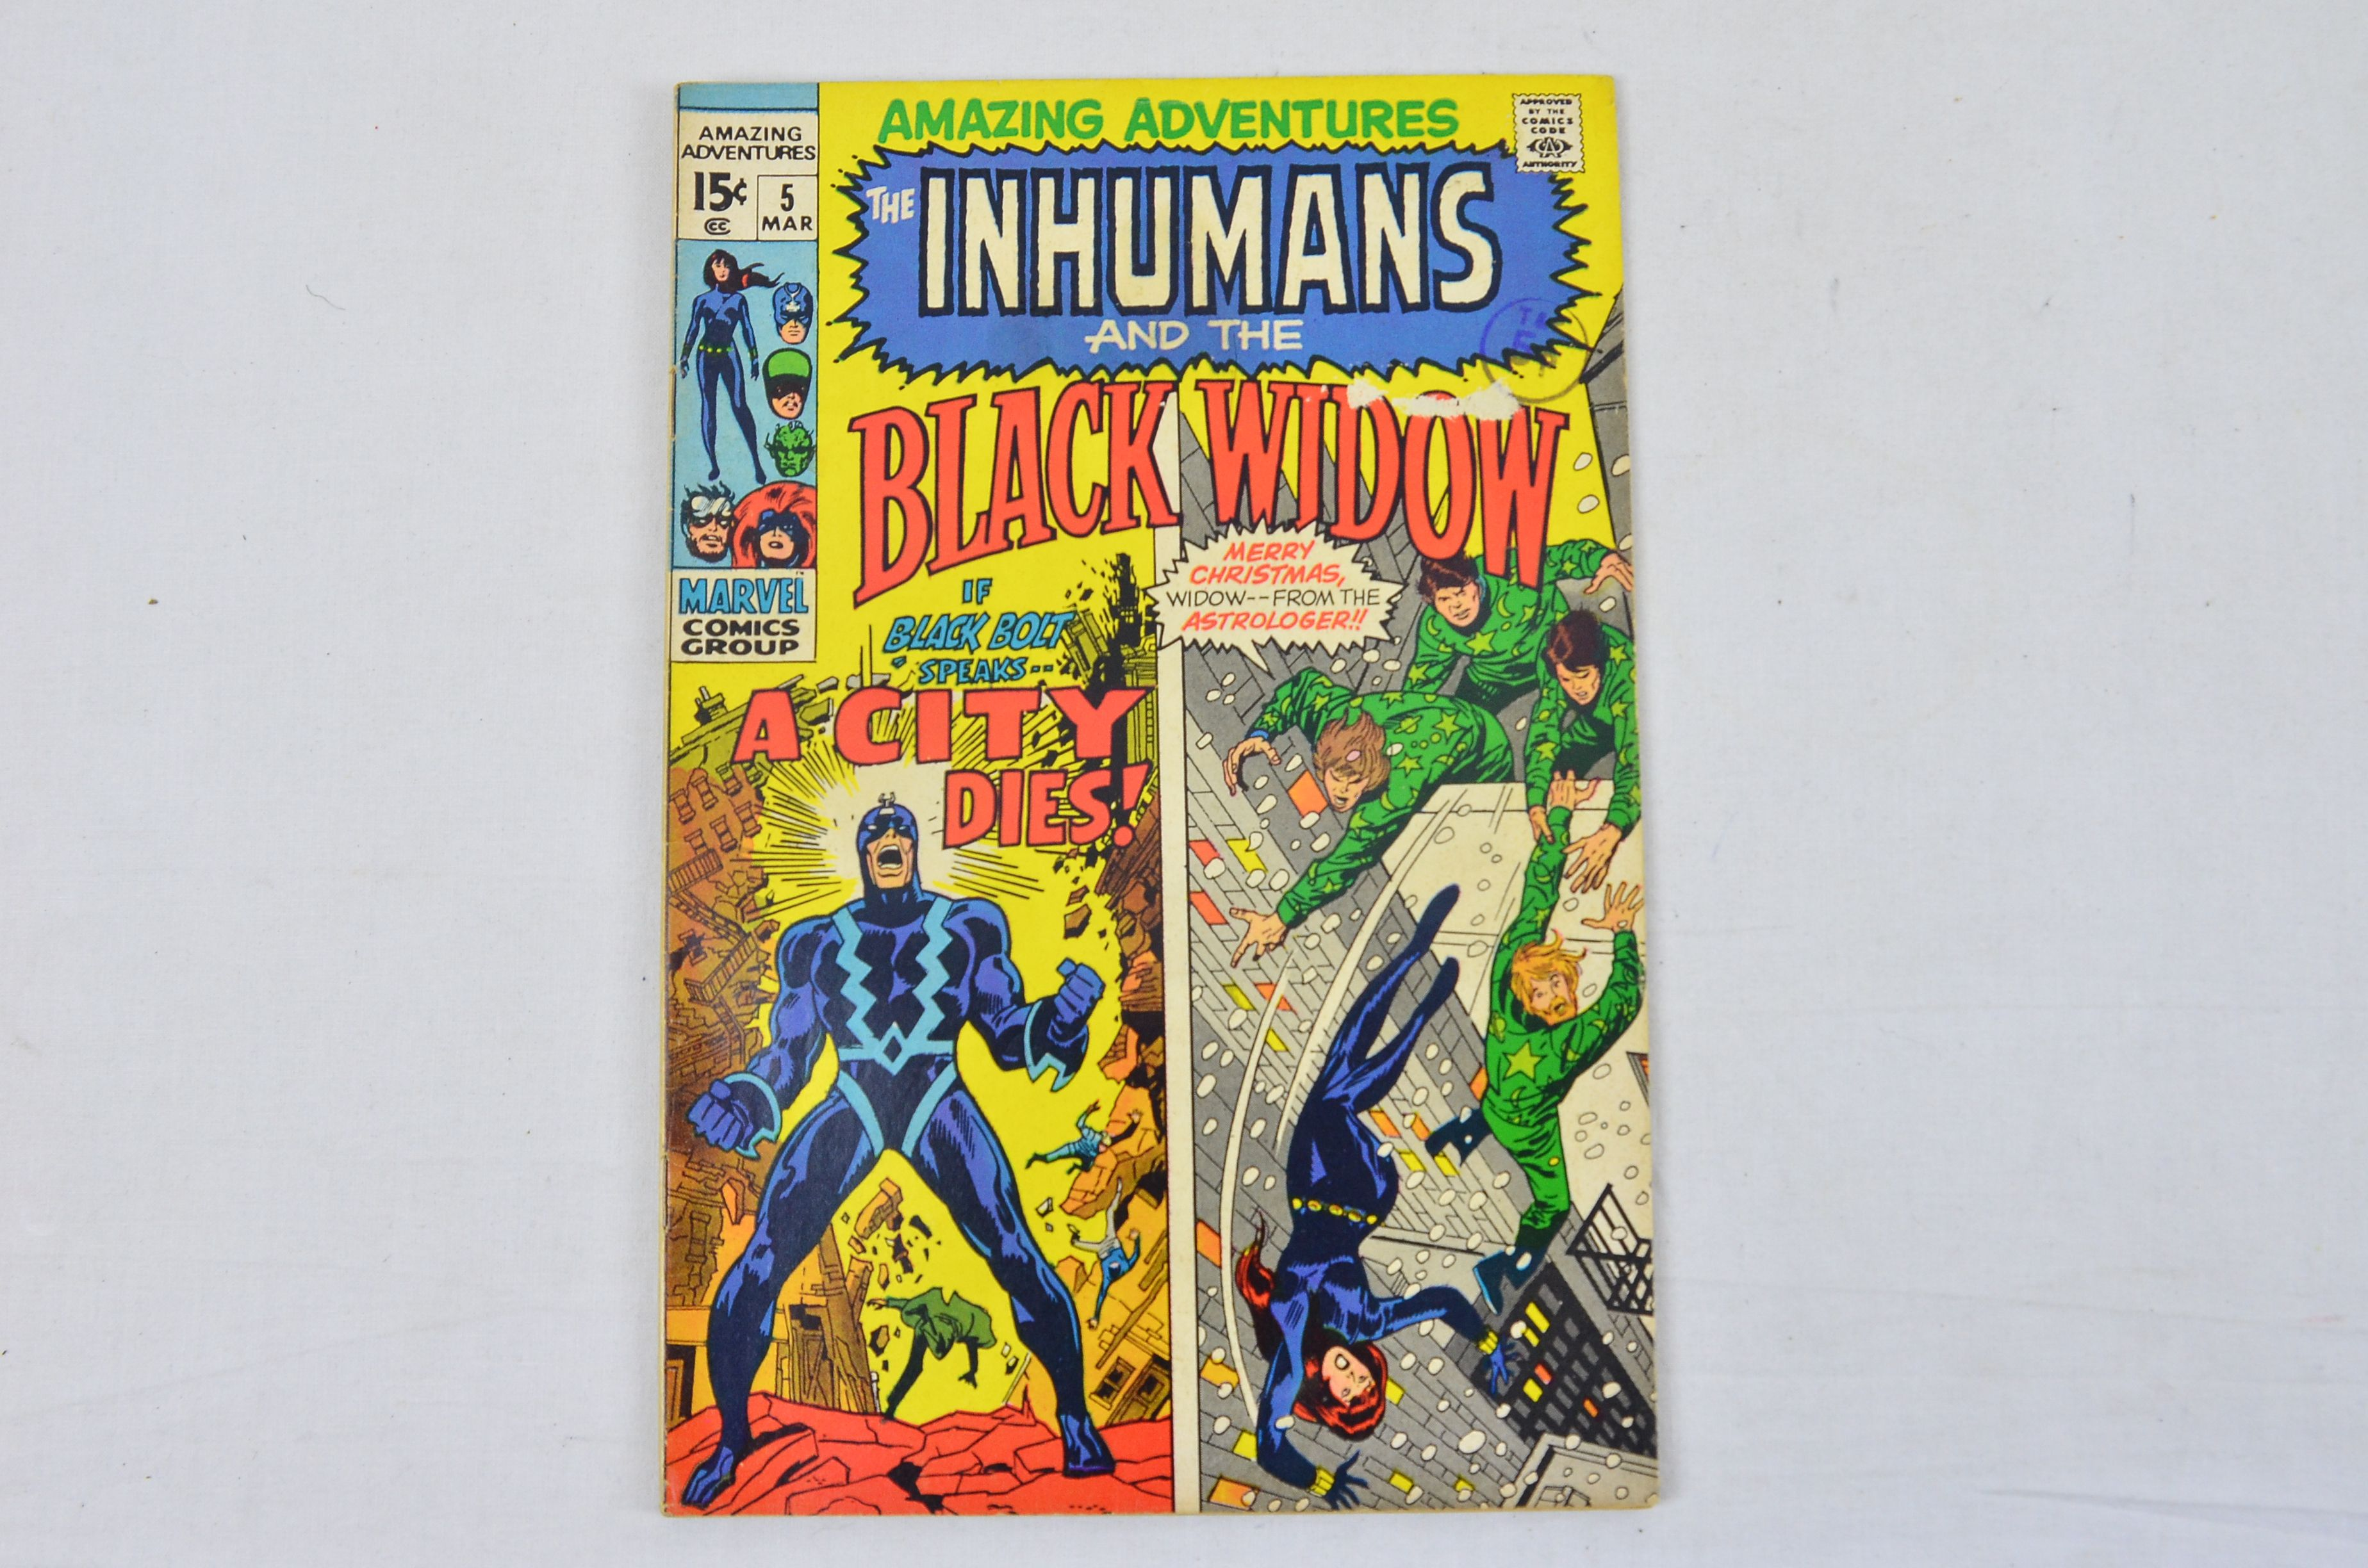 Vintage Marvel Comics Group The Inhumans And The Black Widow Collectable Comic Thumbnail 1